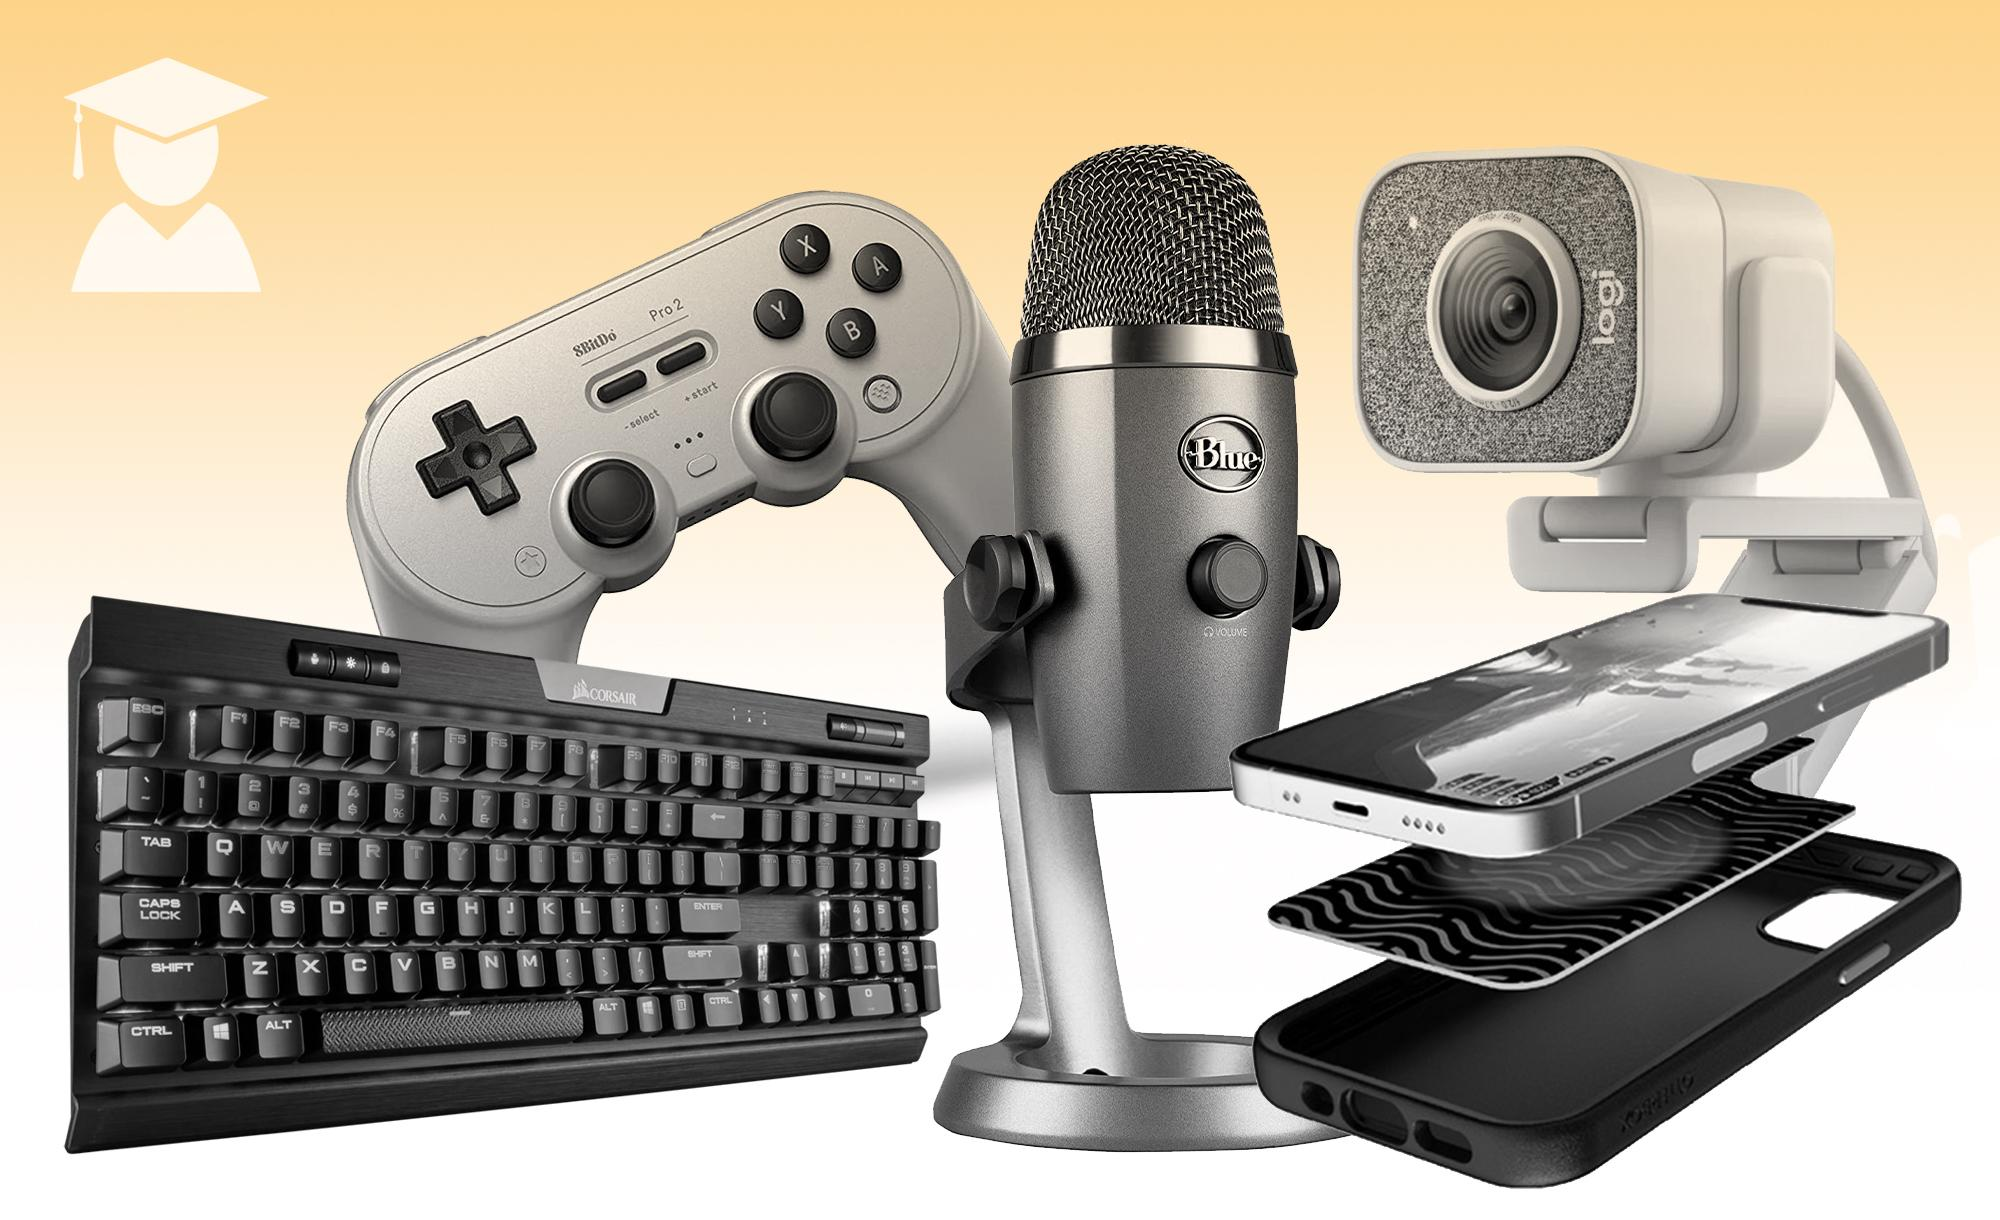 A collage of gaming gear from Engadget's Grad's gift guide.